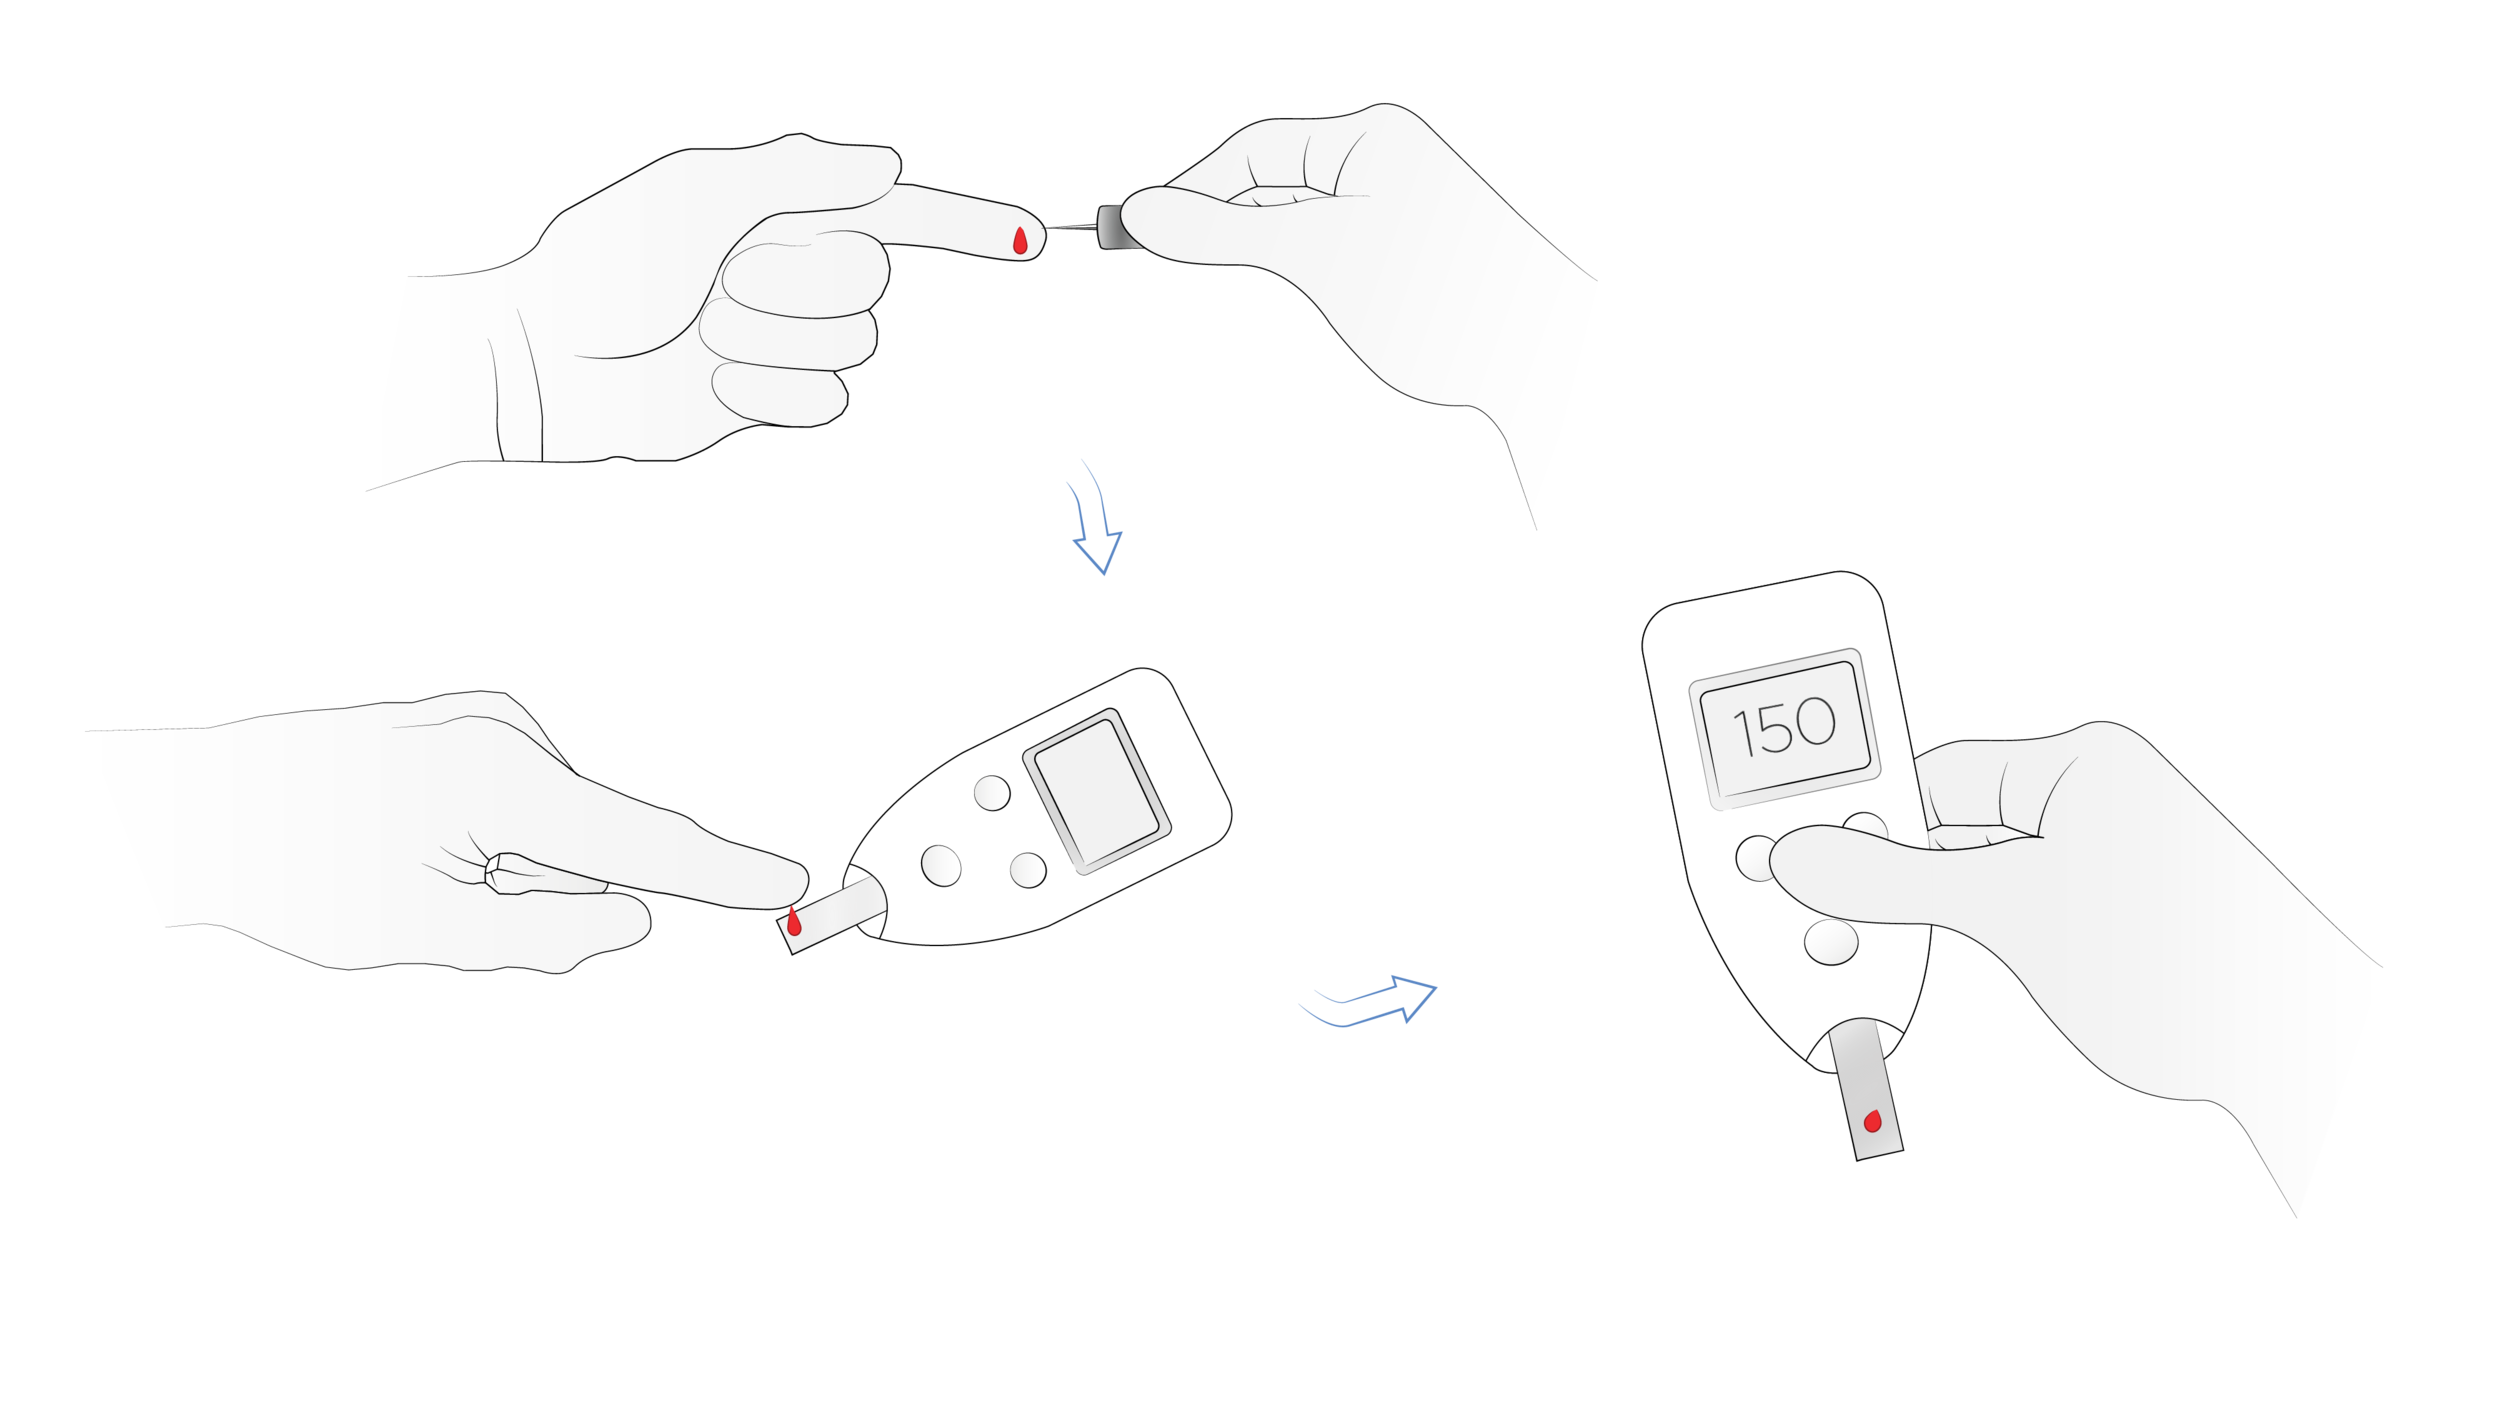 glucose-testing-illustration-10-10.png